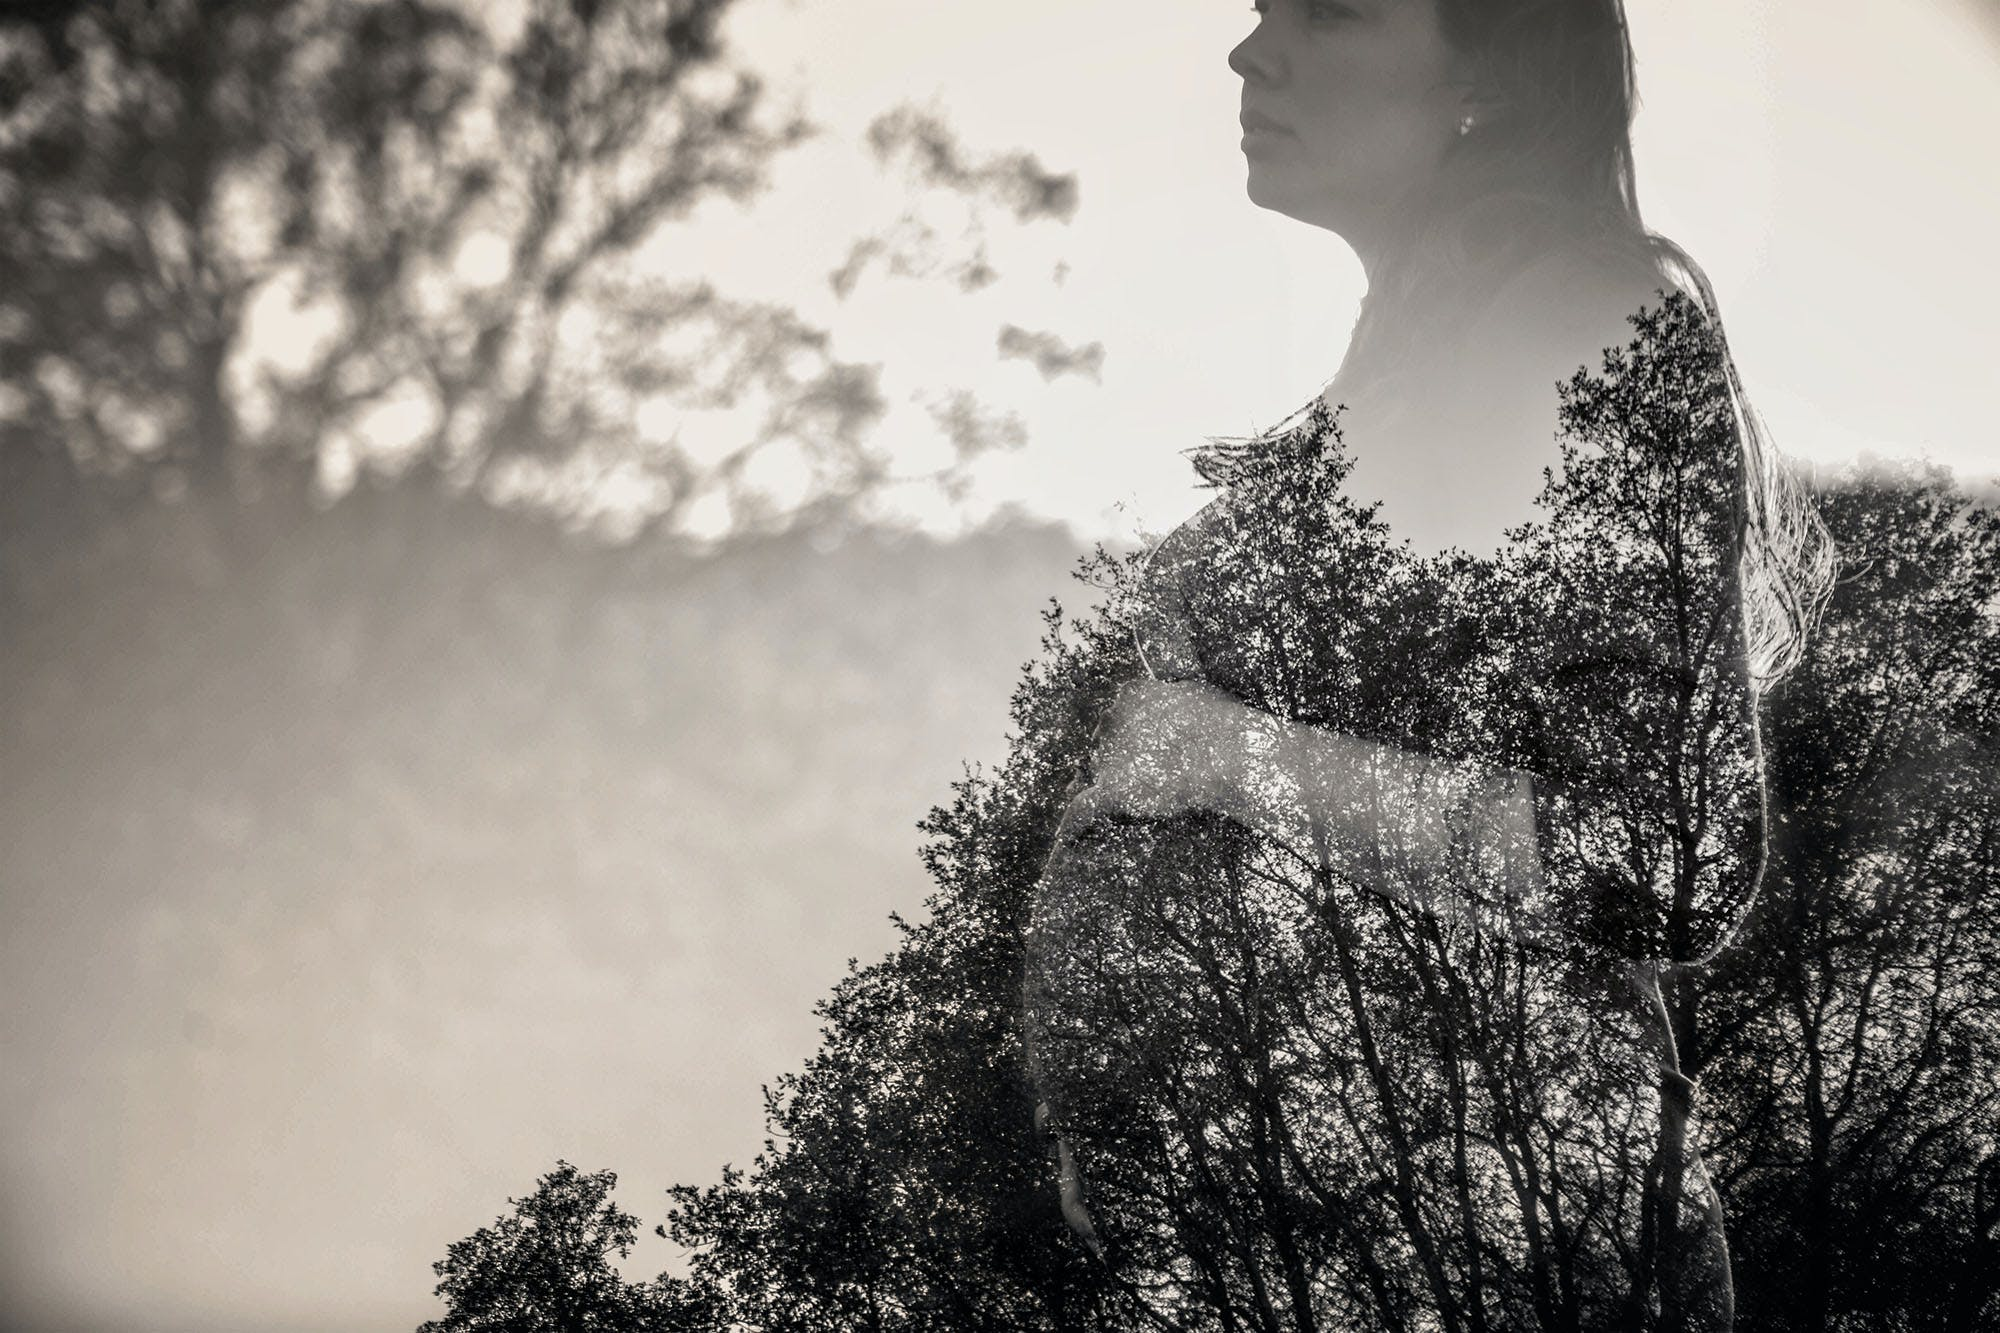 Free stock photo of double exposure, skies, trees, woman